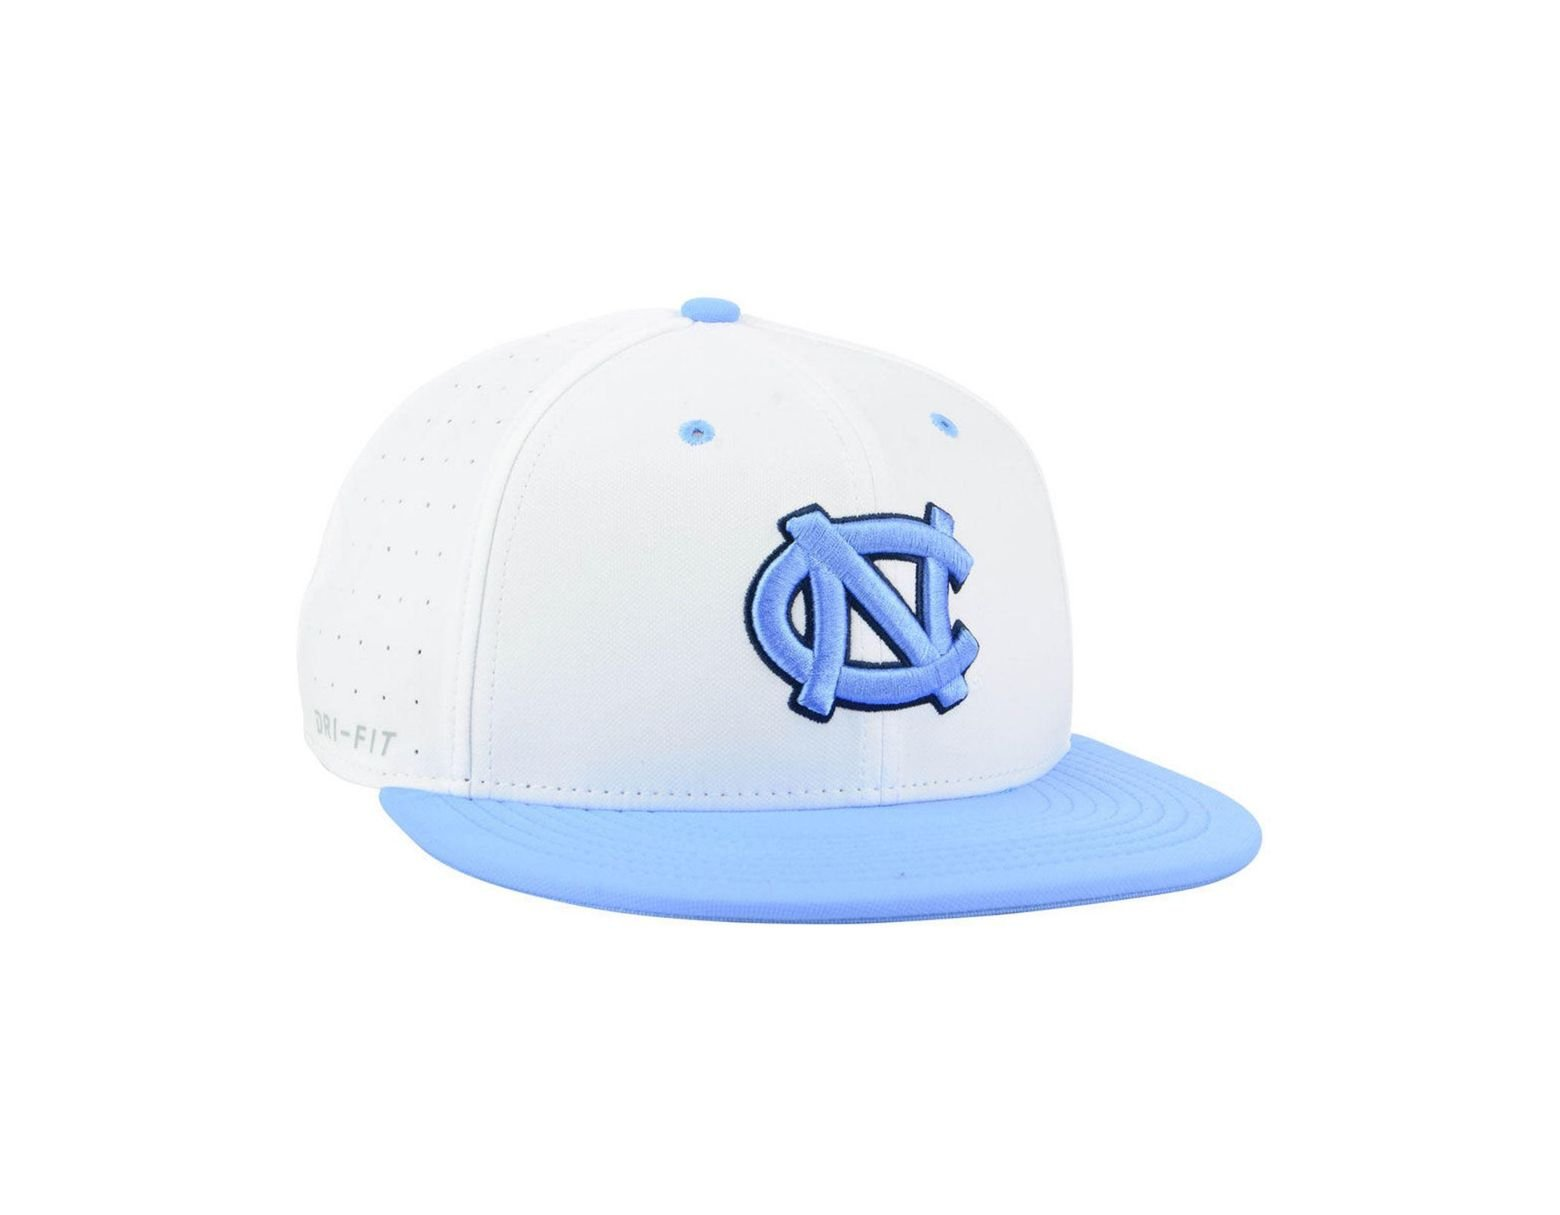 reputable site f8109 1c161 Nike North Carolina Tar Heels Aerobill True Fitted Baseball Cap in White  for Men - Lyst